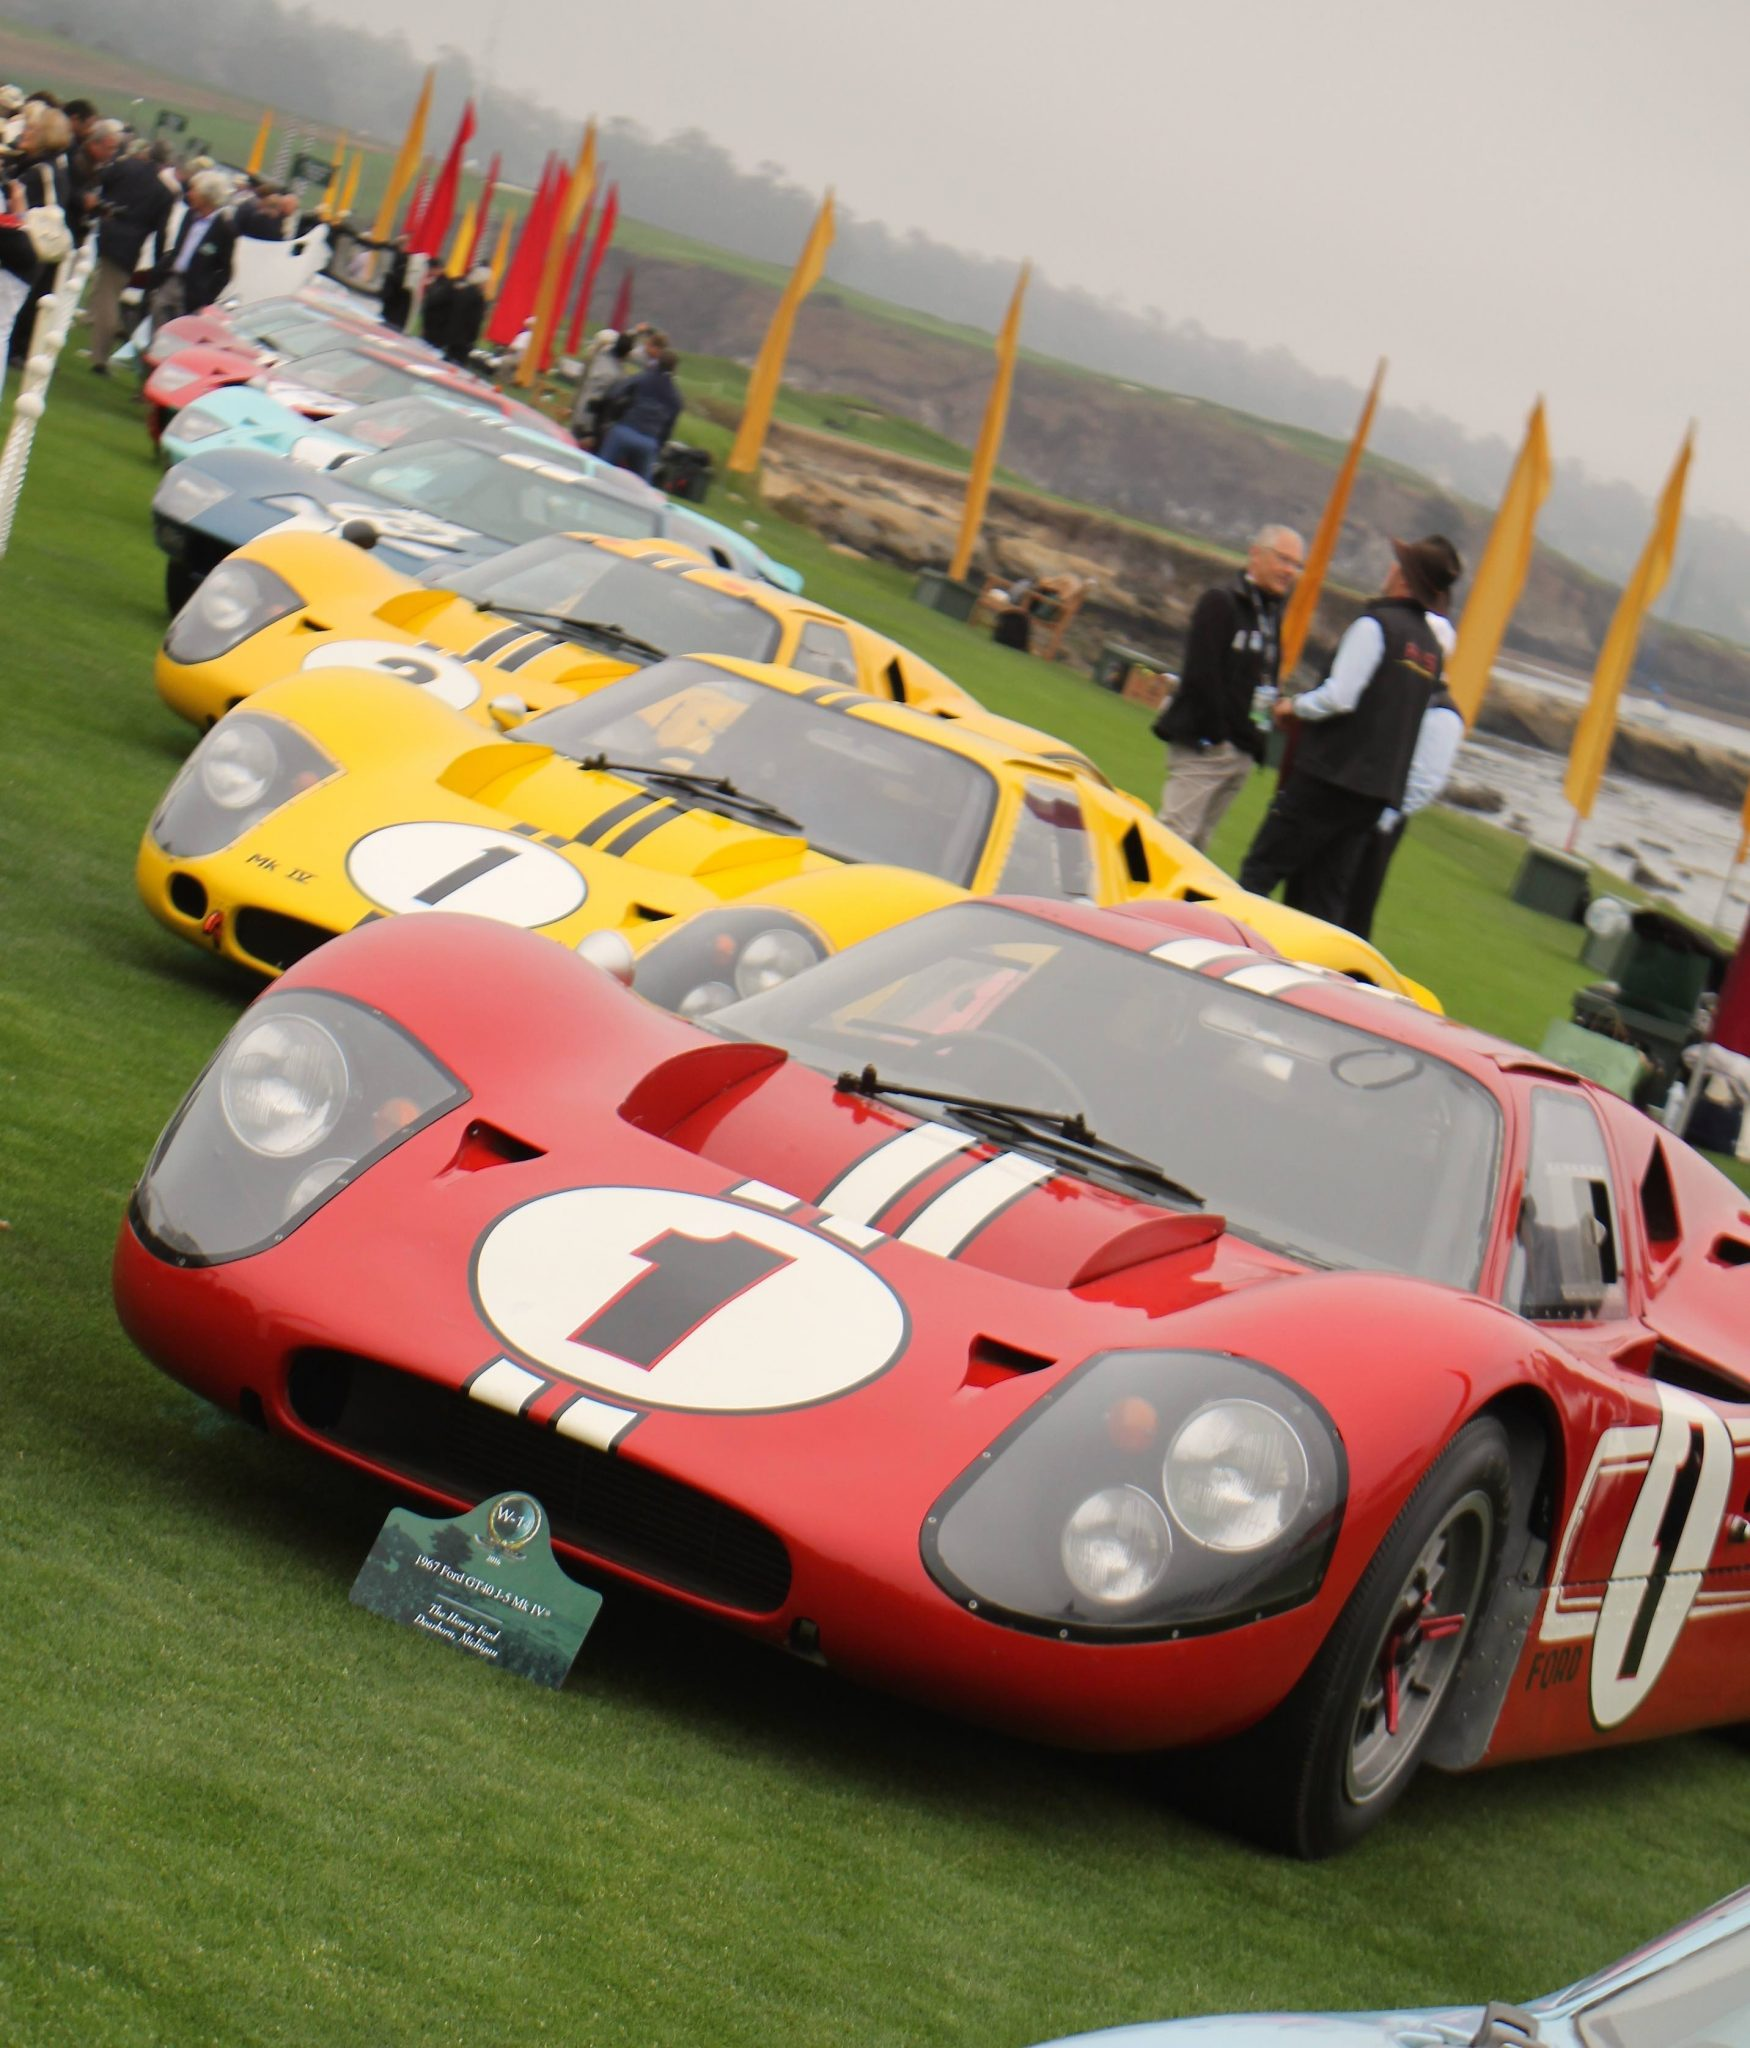 Monterey 2016 7 - Pebble Beach GT40 Lined up